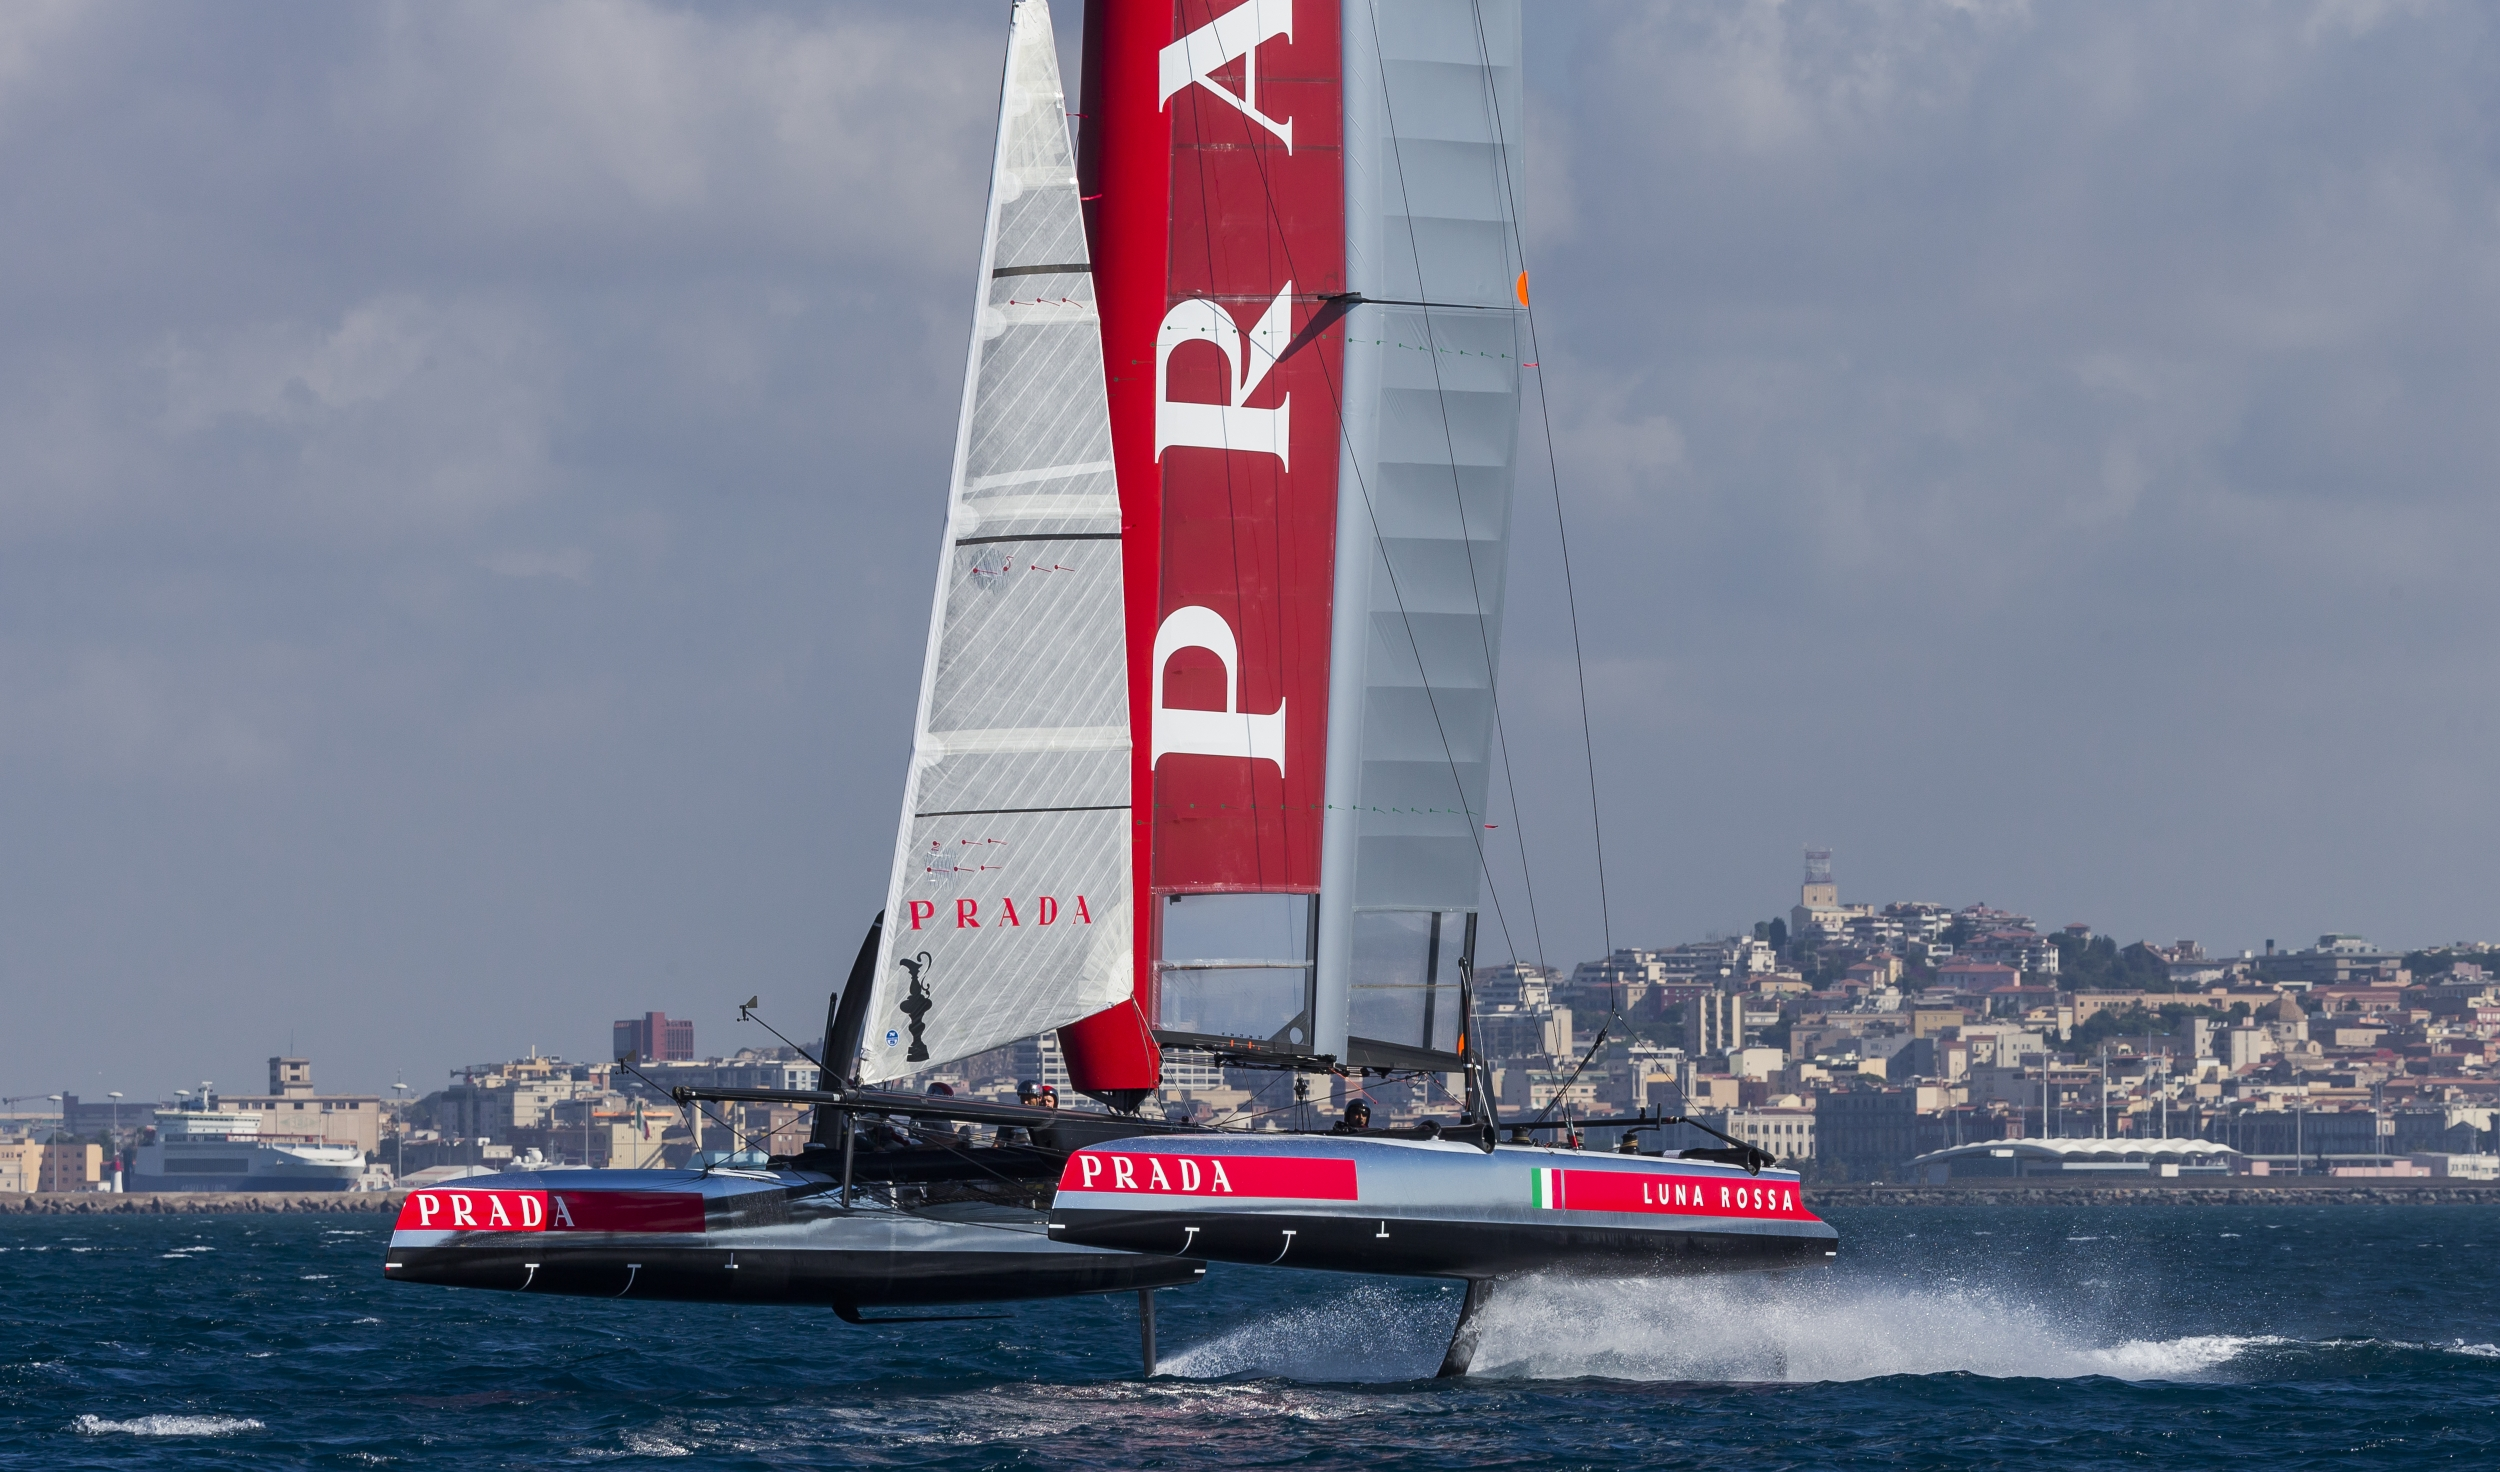 Luna Rossa AC45 training